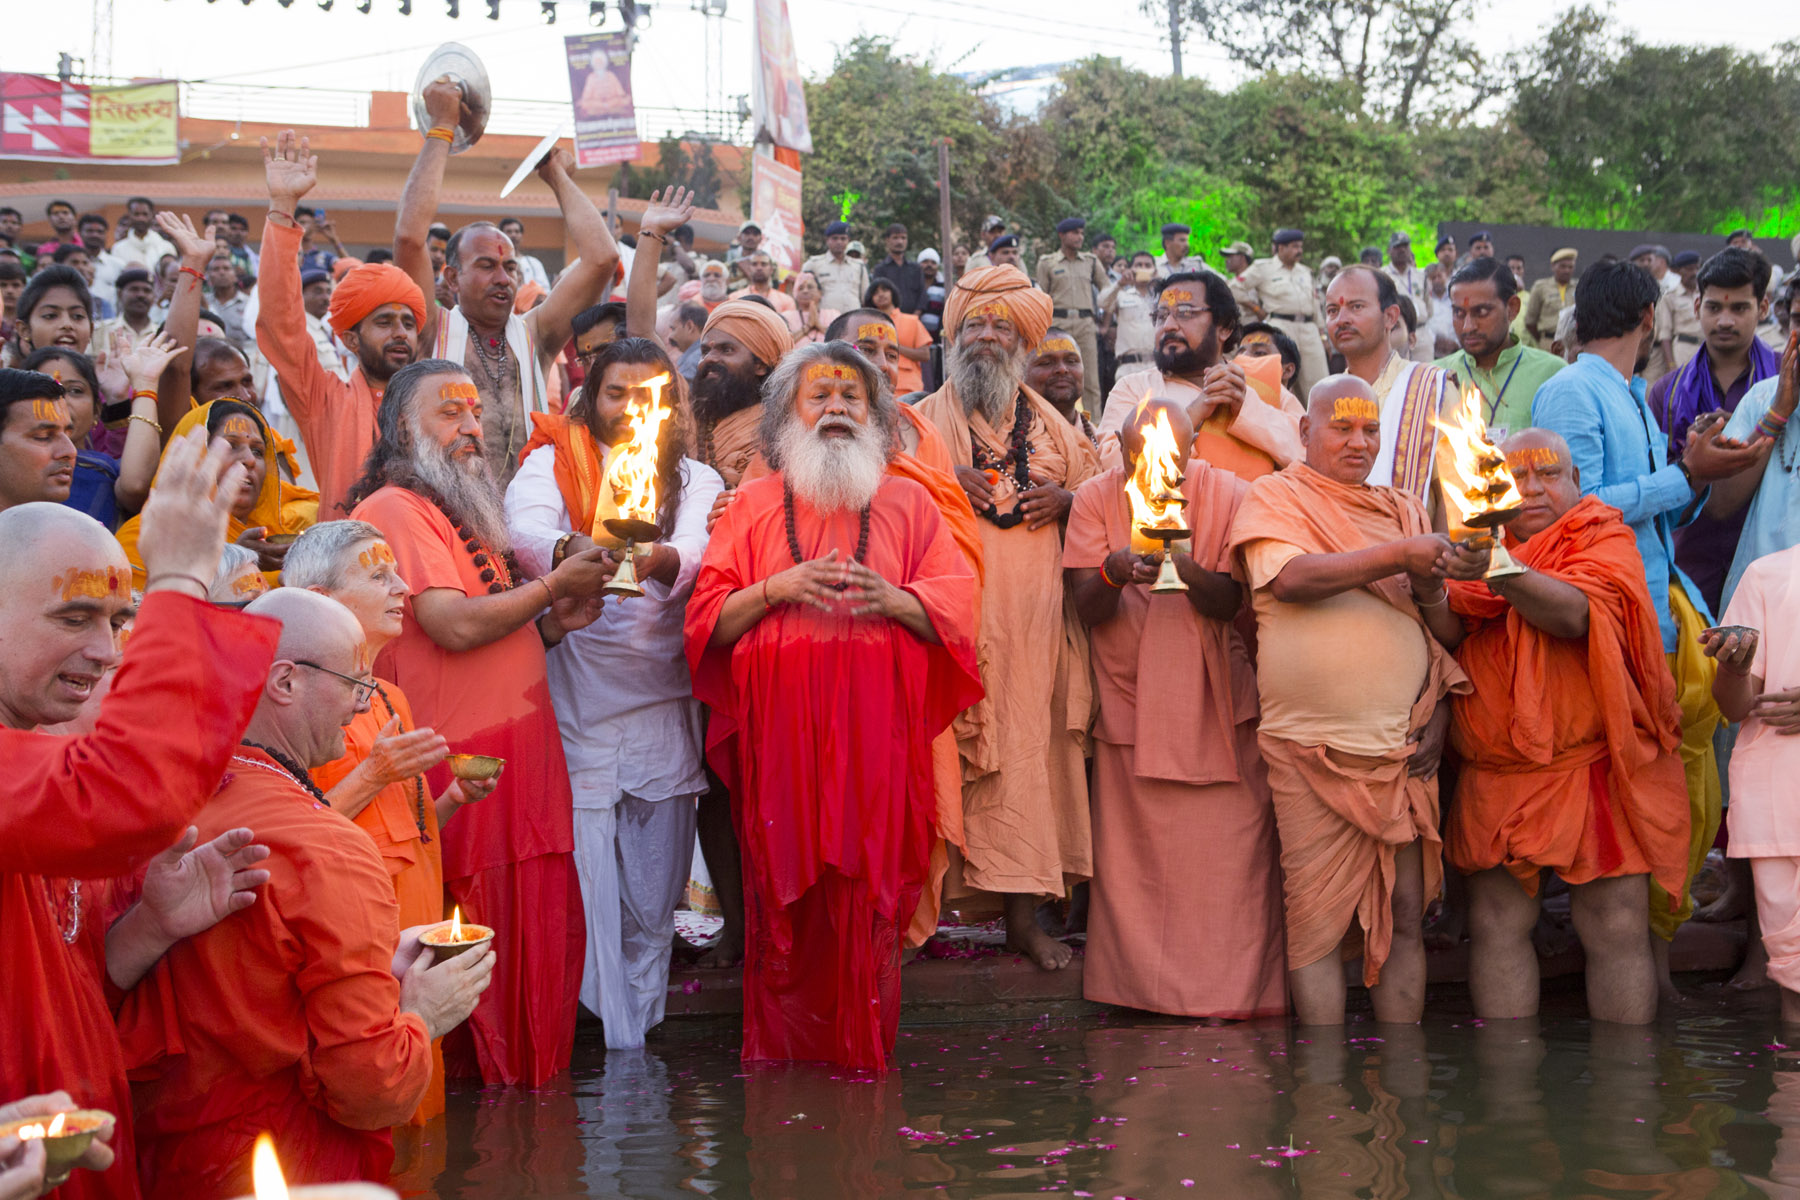 Peace Prayers on the holy River Kshipra, Ujjain